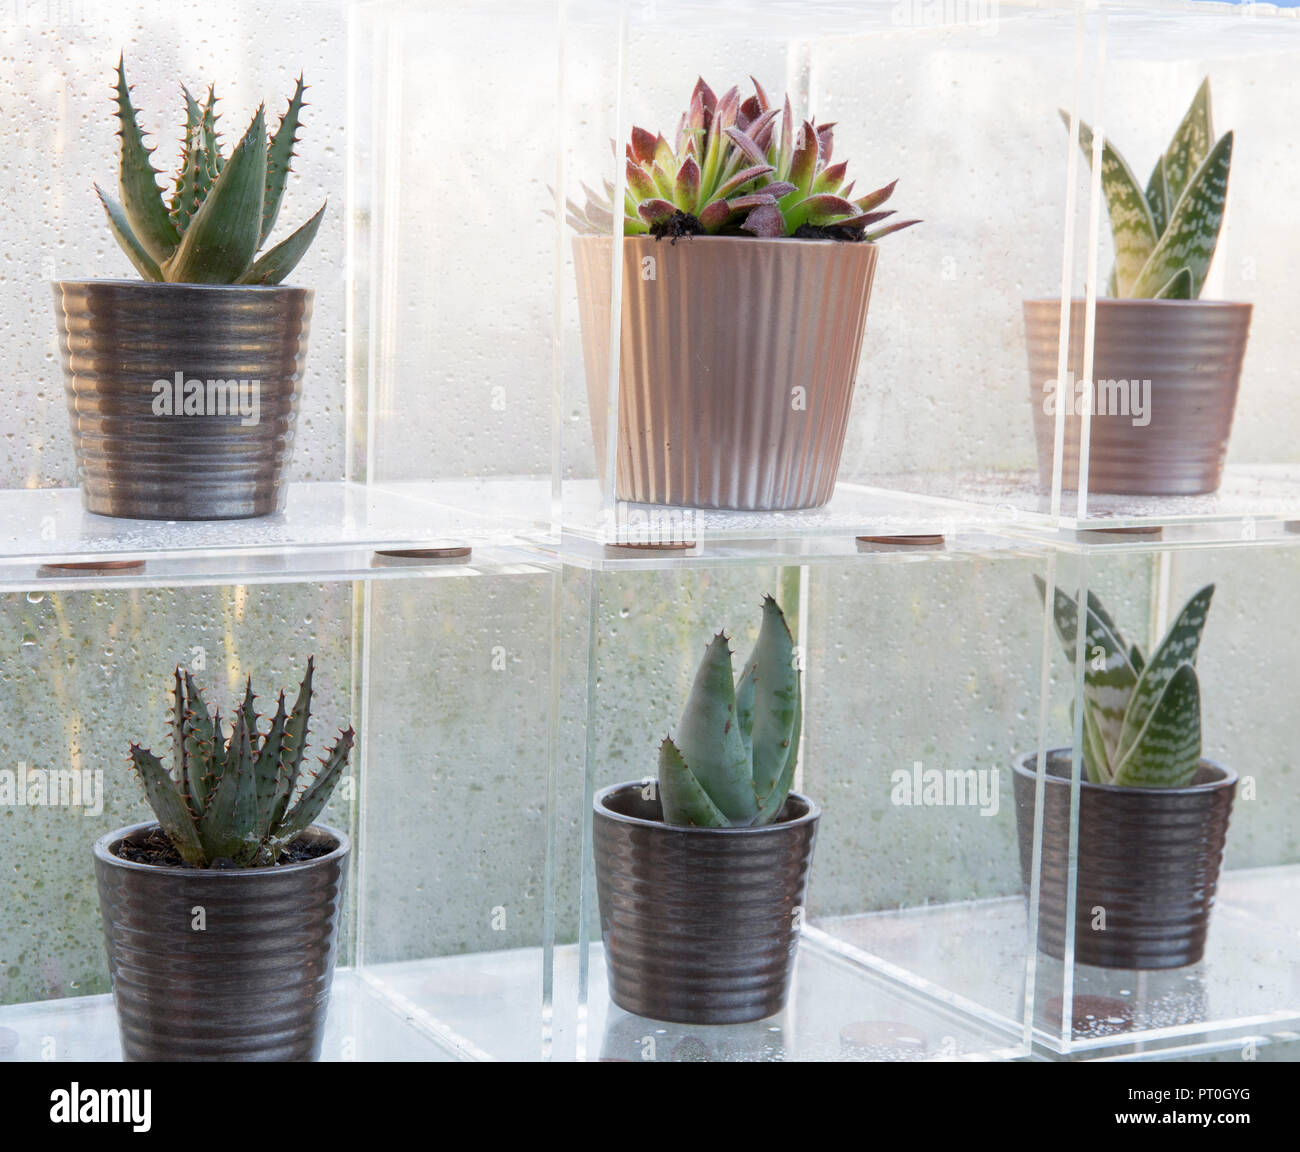 Perspex boxes displaying a collection of succulents growing in ceramic plant pots, Sempervivum, Aloe 'Paradisicum', At Home, Grow, Dine, Relax, RHS Ma Stock Photo